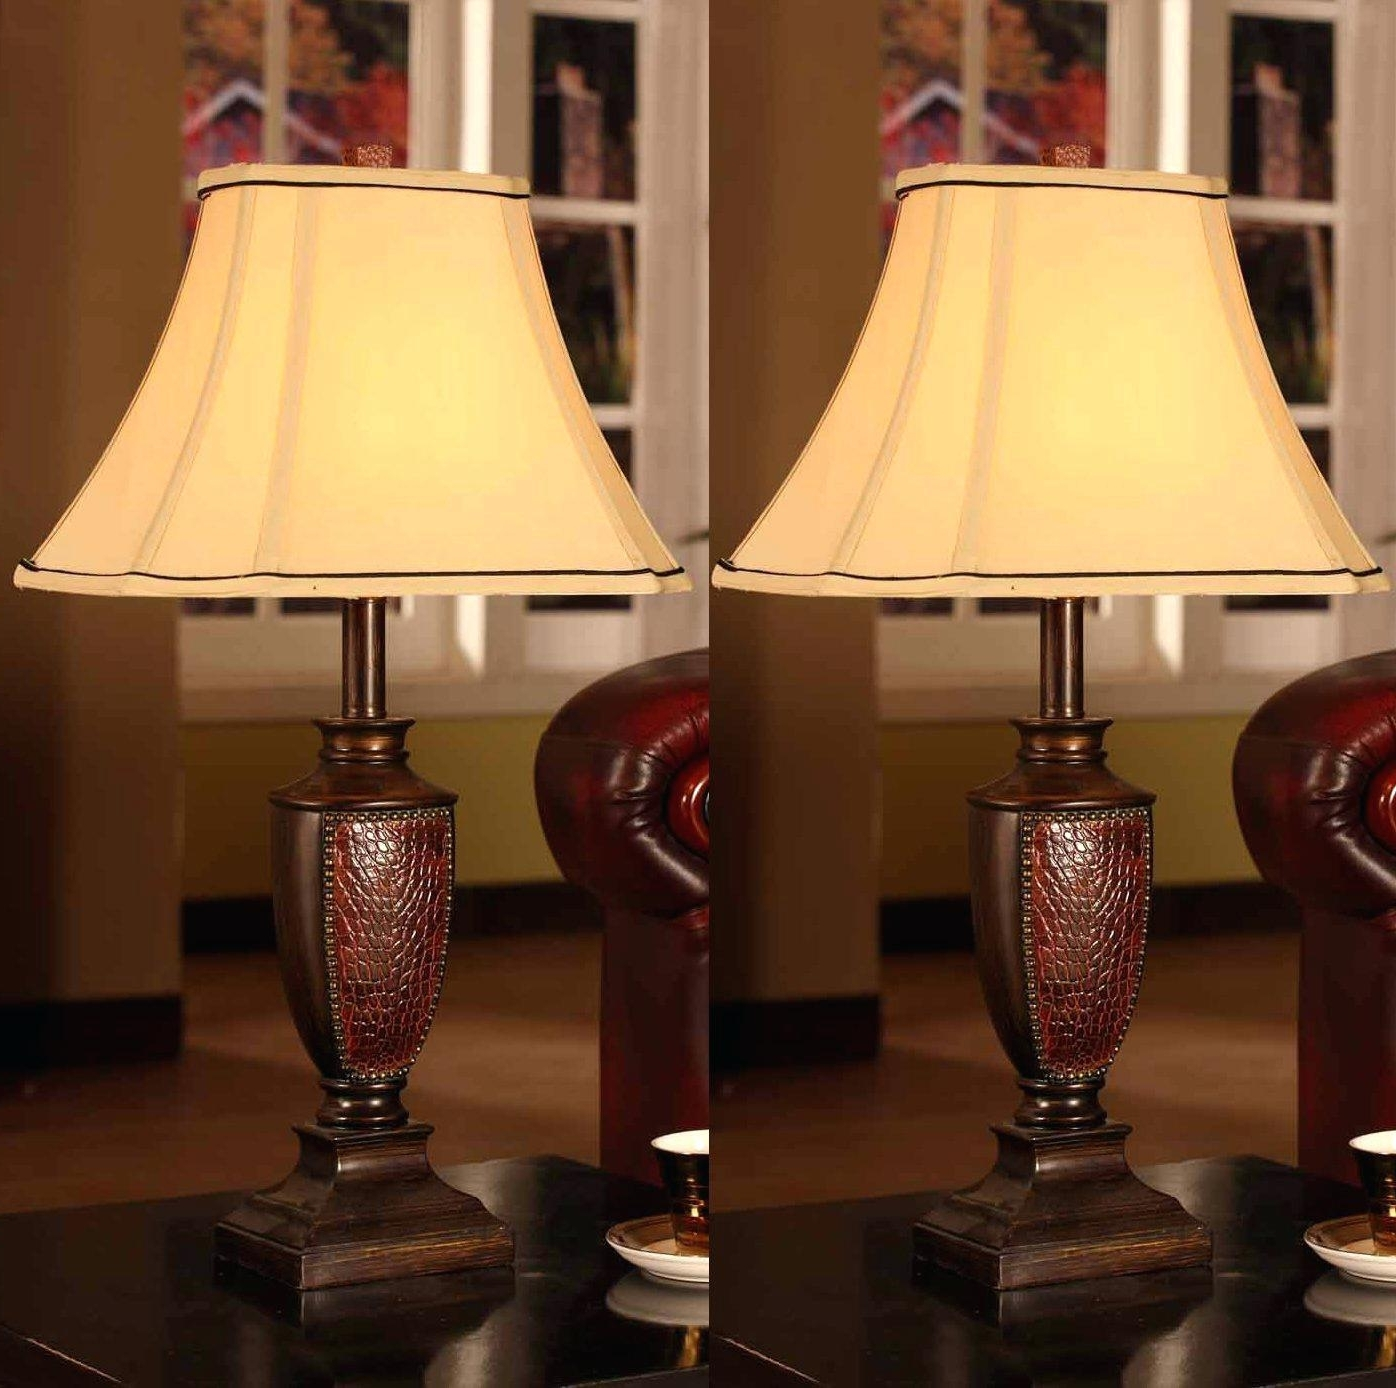 Current Inspiring Table Lamp Designblack For Living Room White Pic For Traditional Living Room Table Lamps (View 3 of 20)